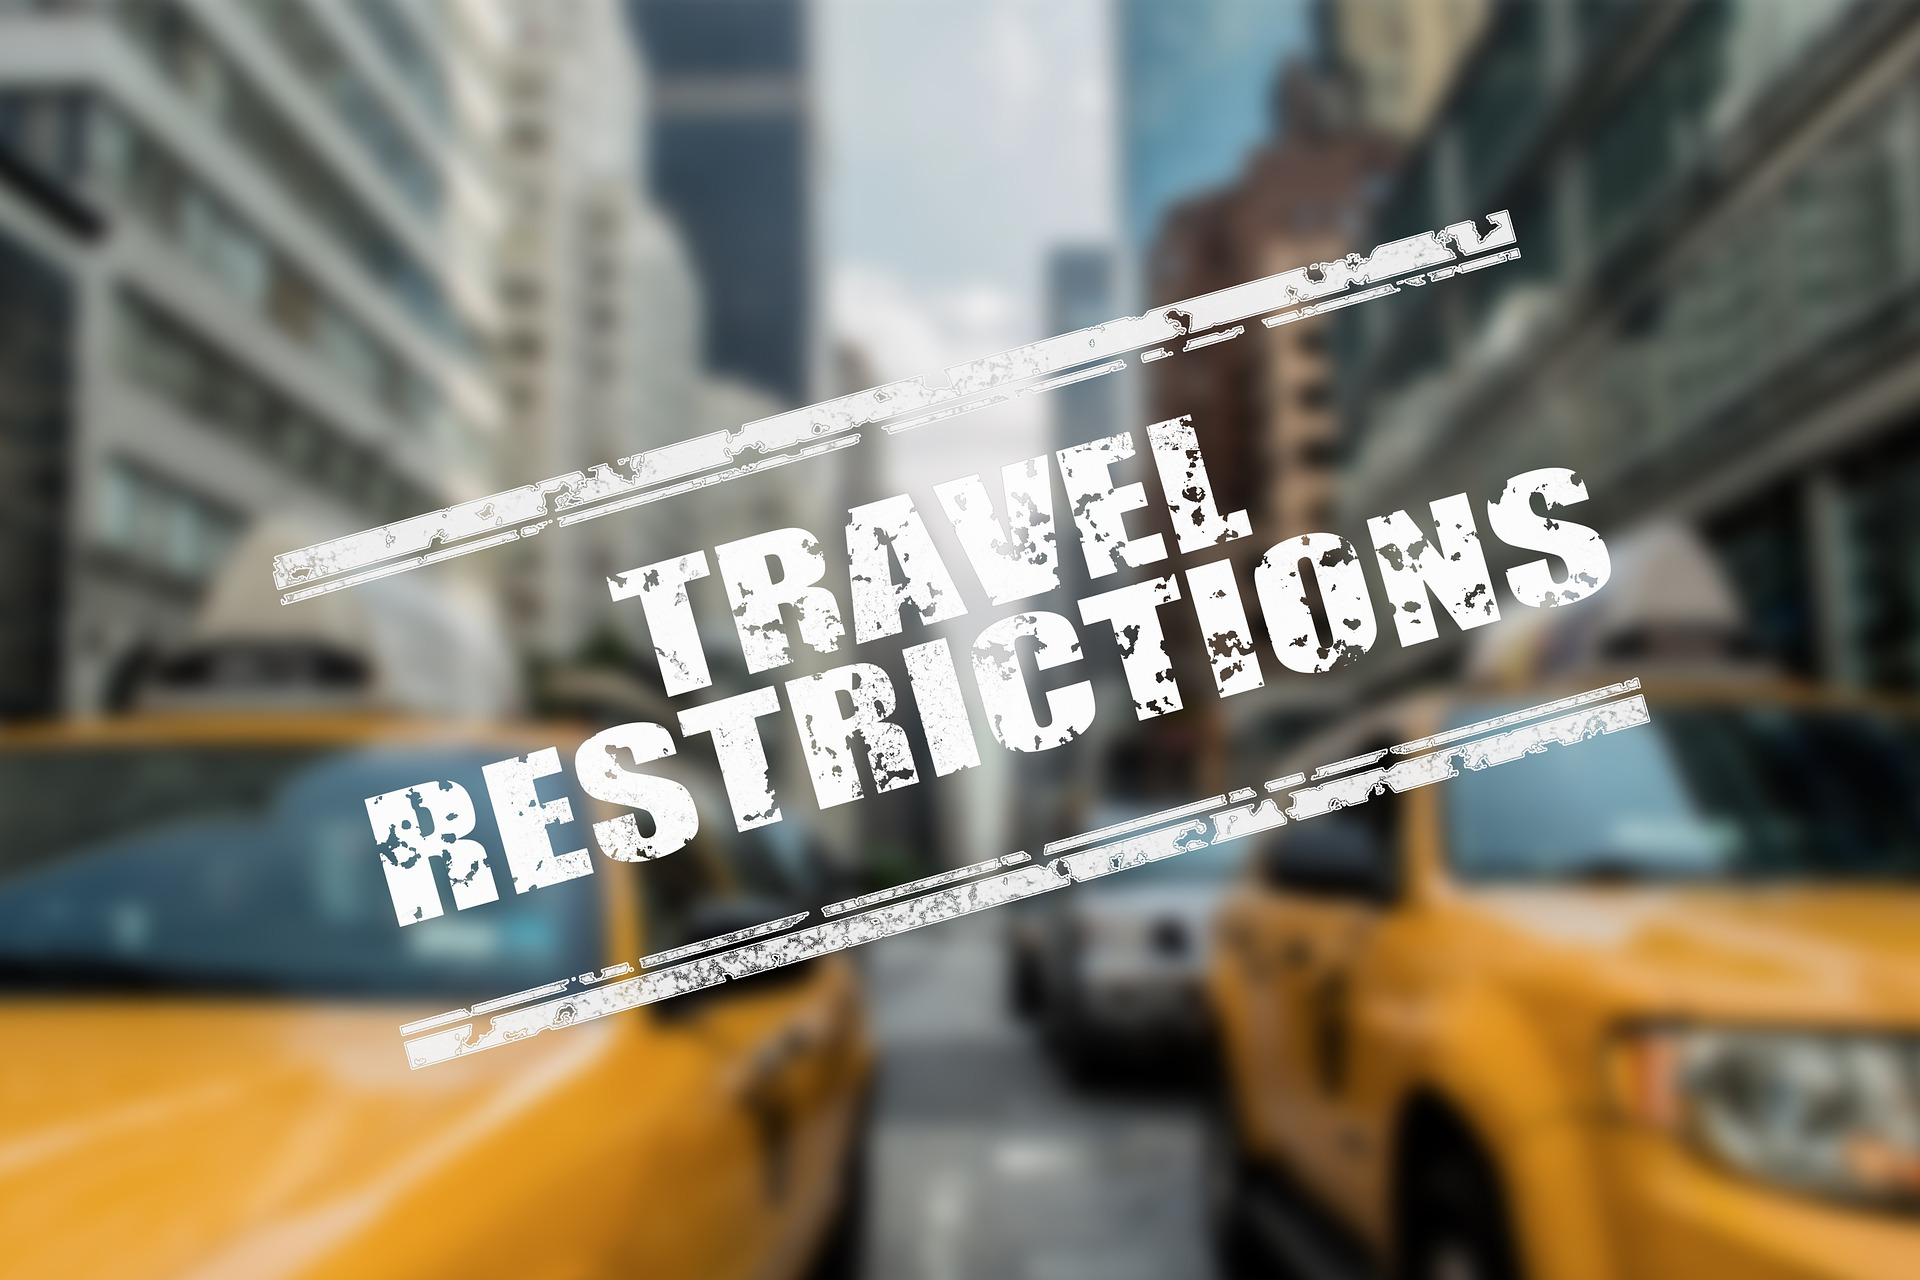 travel restrictions, no entry, closed border, strict, lockdown, quarantine, coronavirus, covid-19, travelling, domestic travel, SOPs, facemask, hand sanitizer, taxi, New York City, UK, USA, London, Travel Agency